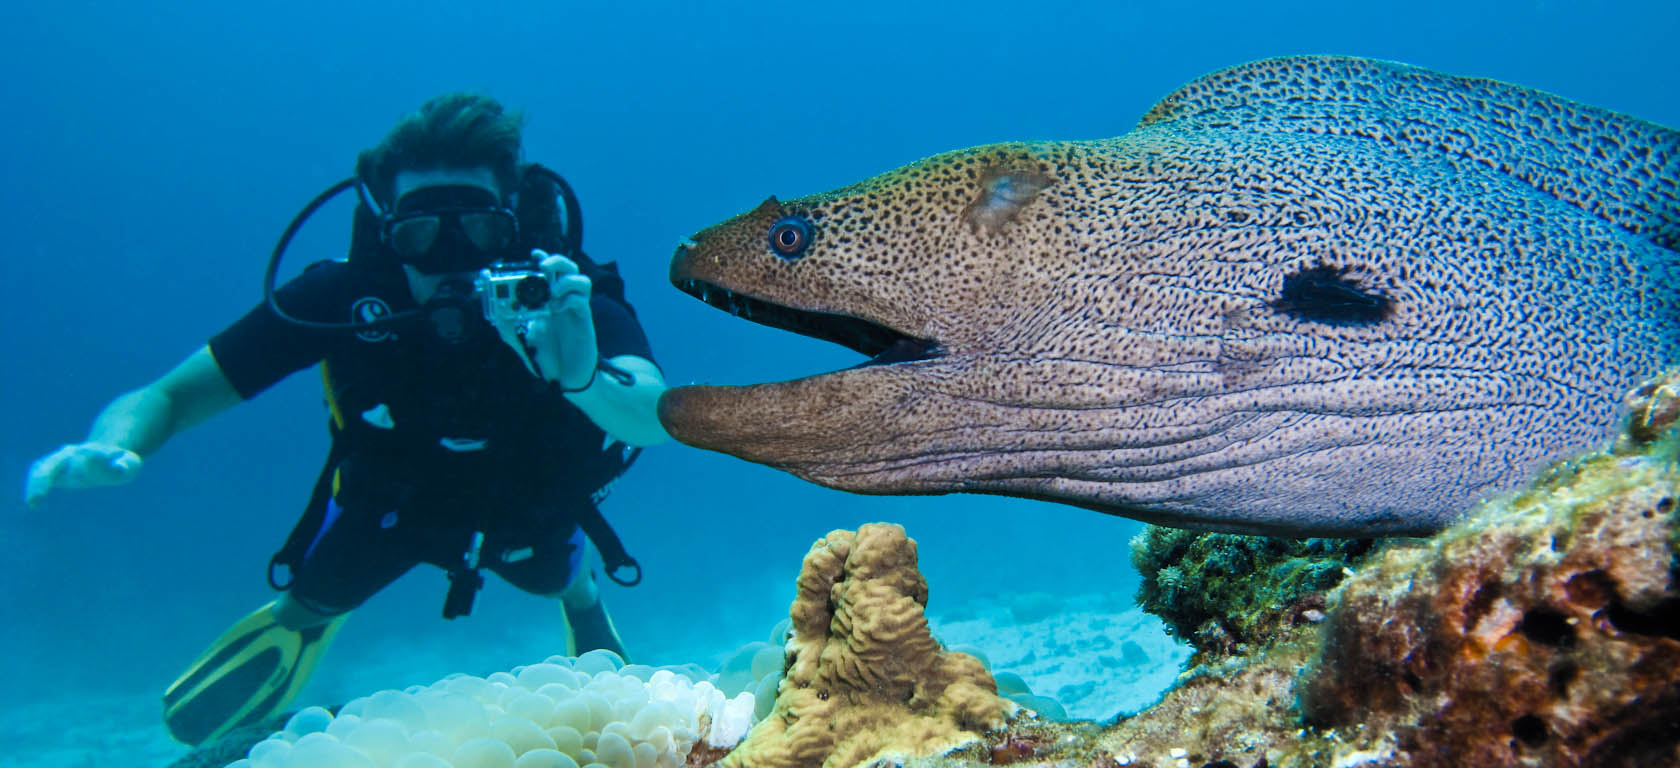 Giant-Moray-Eels-Gymnothorax-javanicus